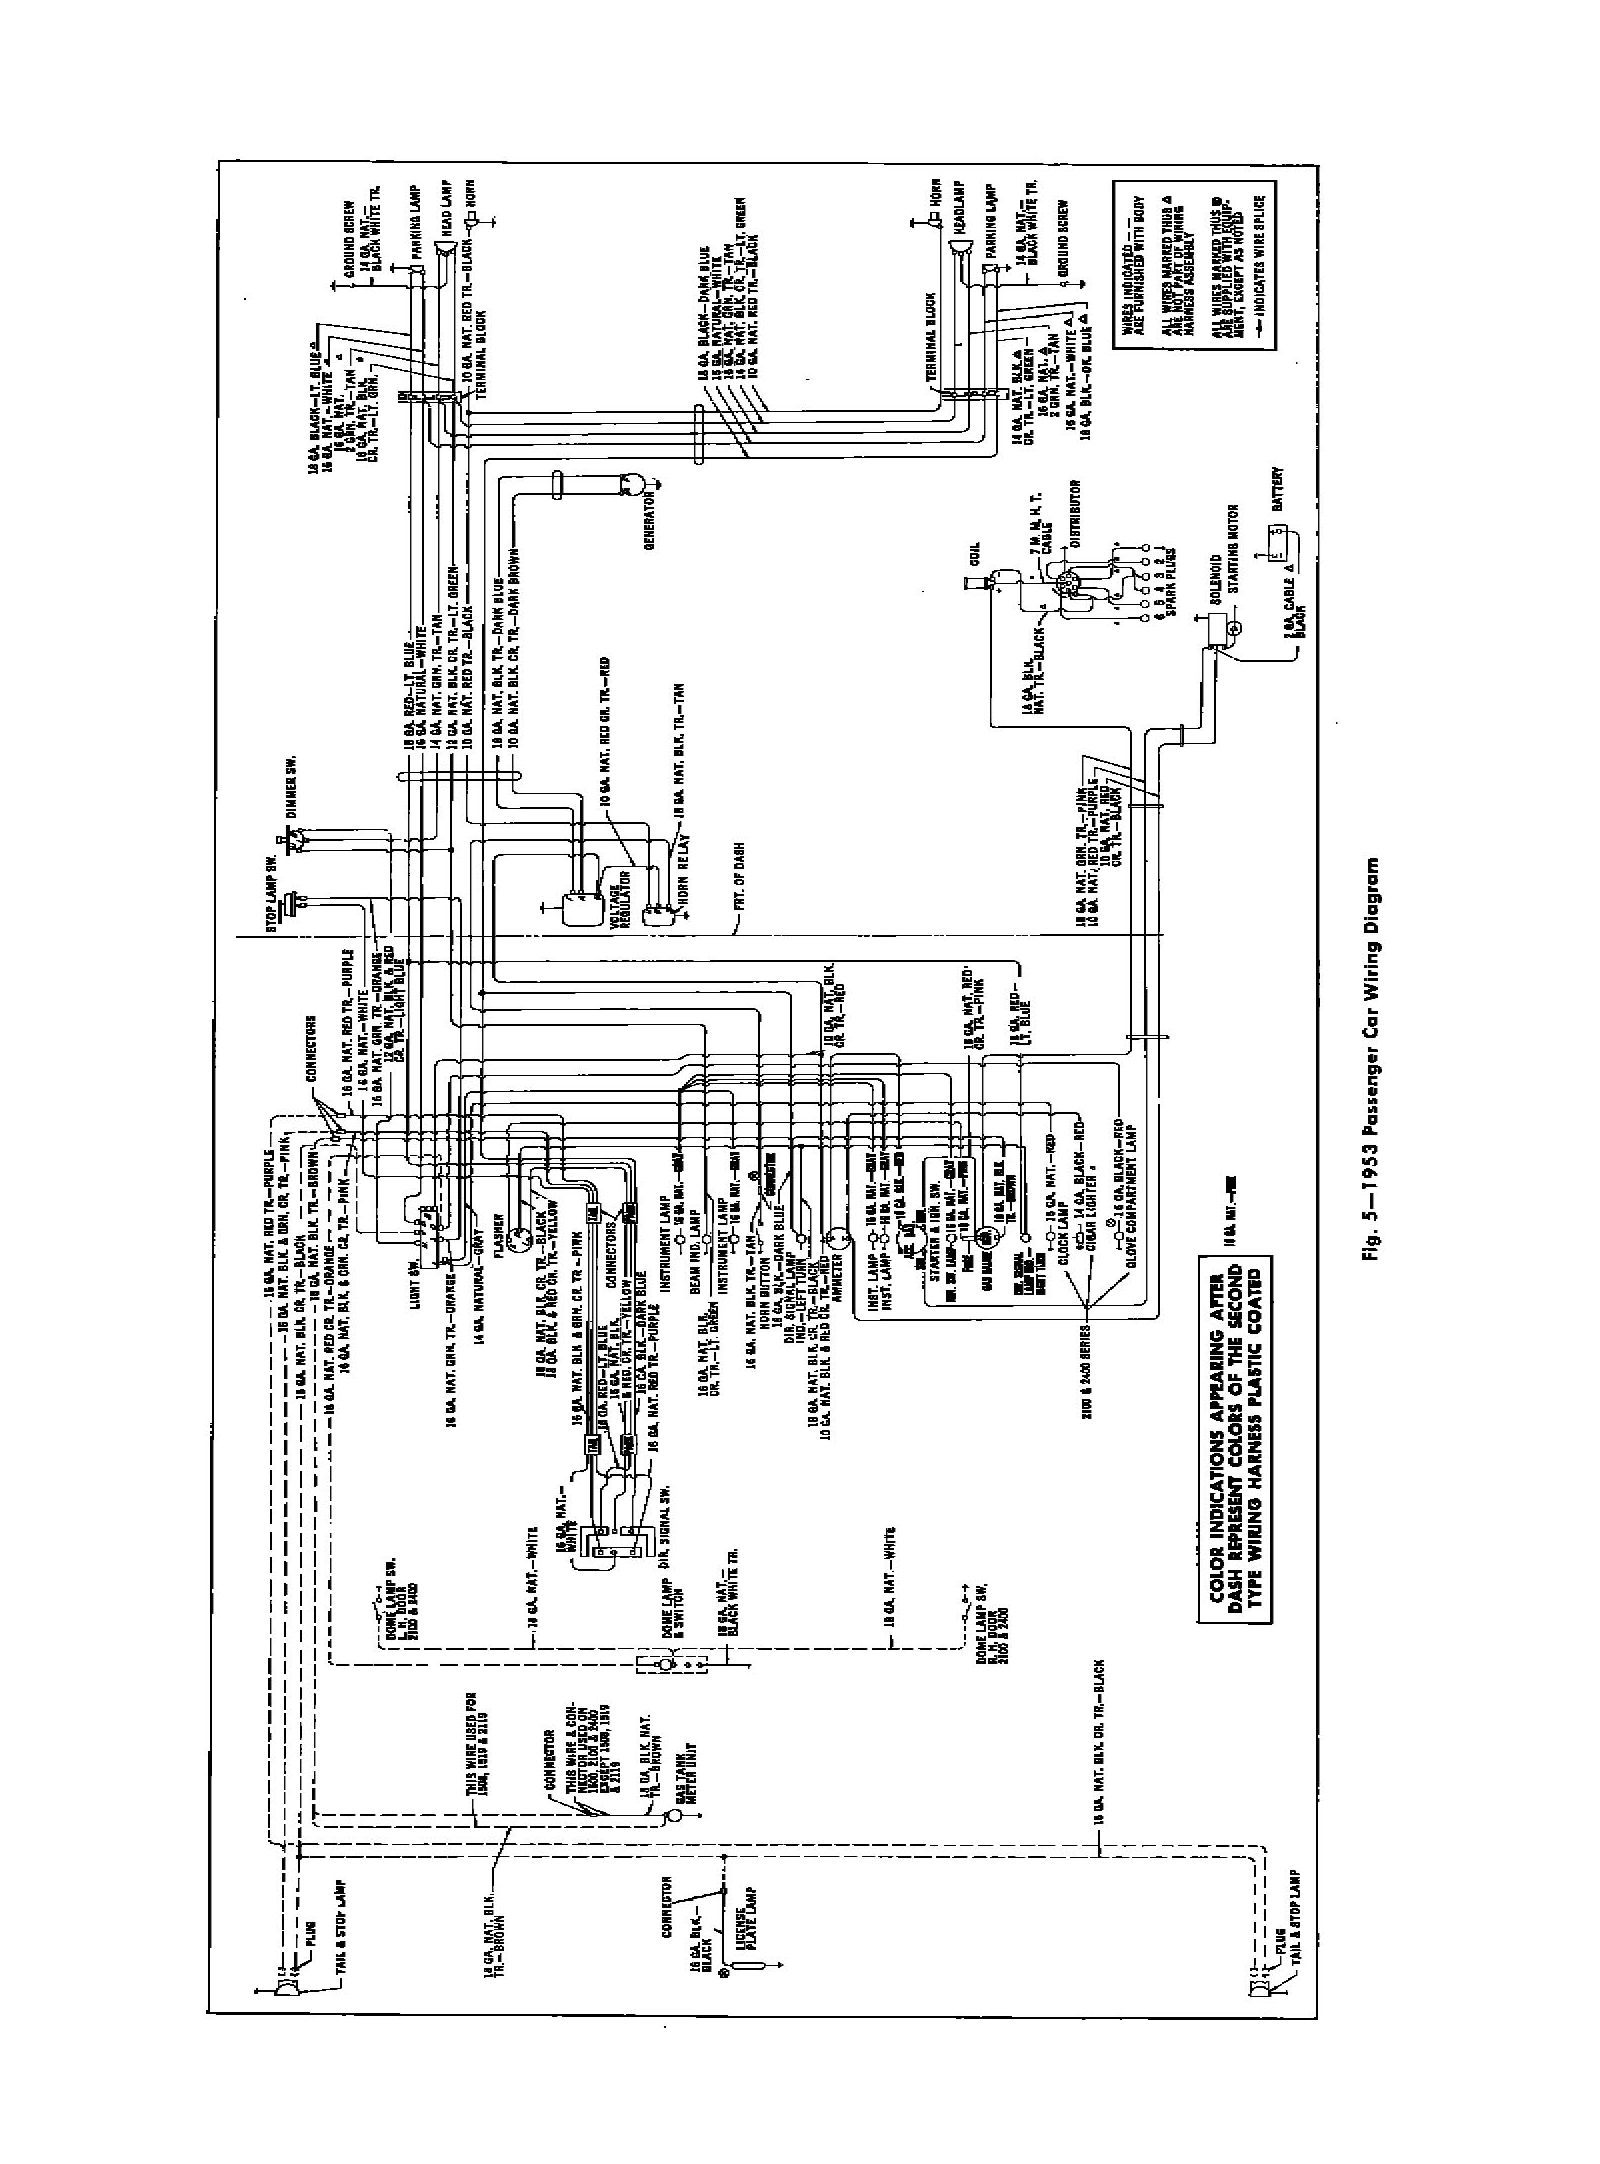 [WQZT_9871]  YK_0774] 1950 Chevy Headlight Switch Wiring Diagram 1953 1954 Chevrolet  Wiring Diagram | 1954 Chevy 210 Wiring Diagram |  | Ospor Garna Grebs Unho Rele Mohammedshrine Librar Wiring 101